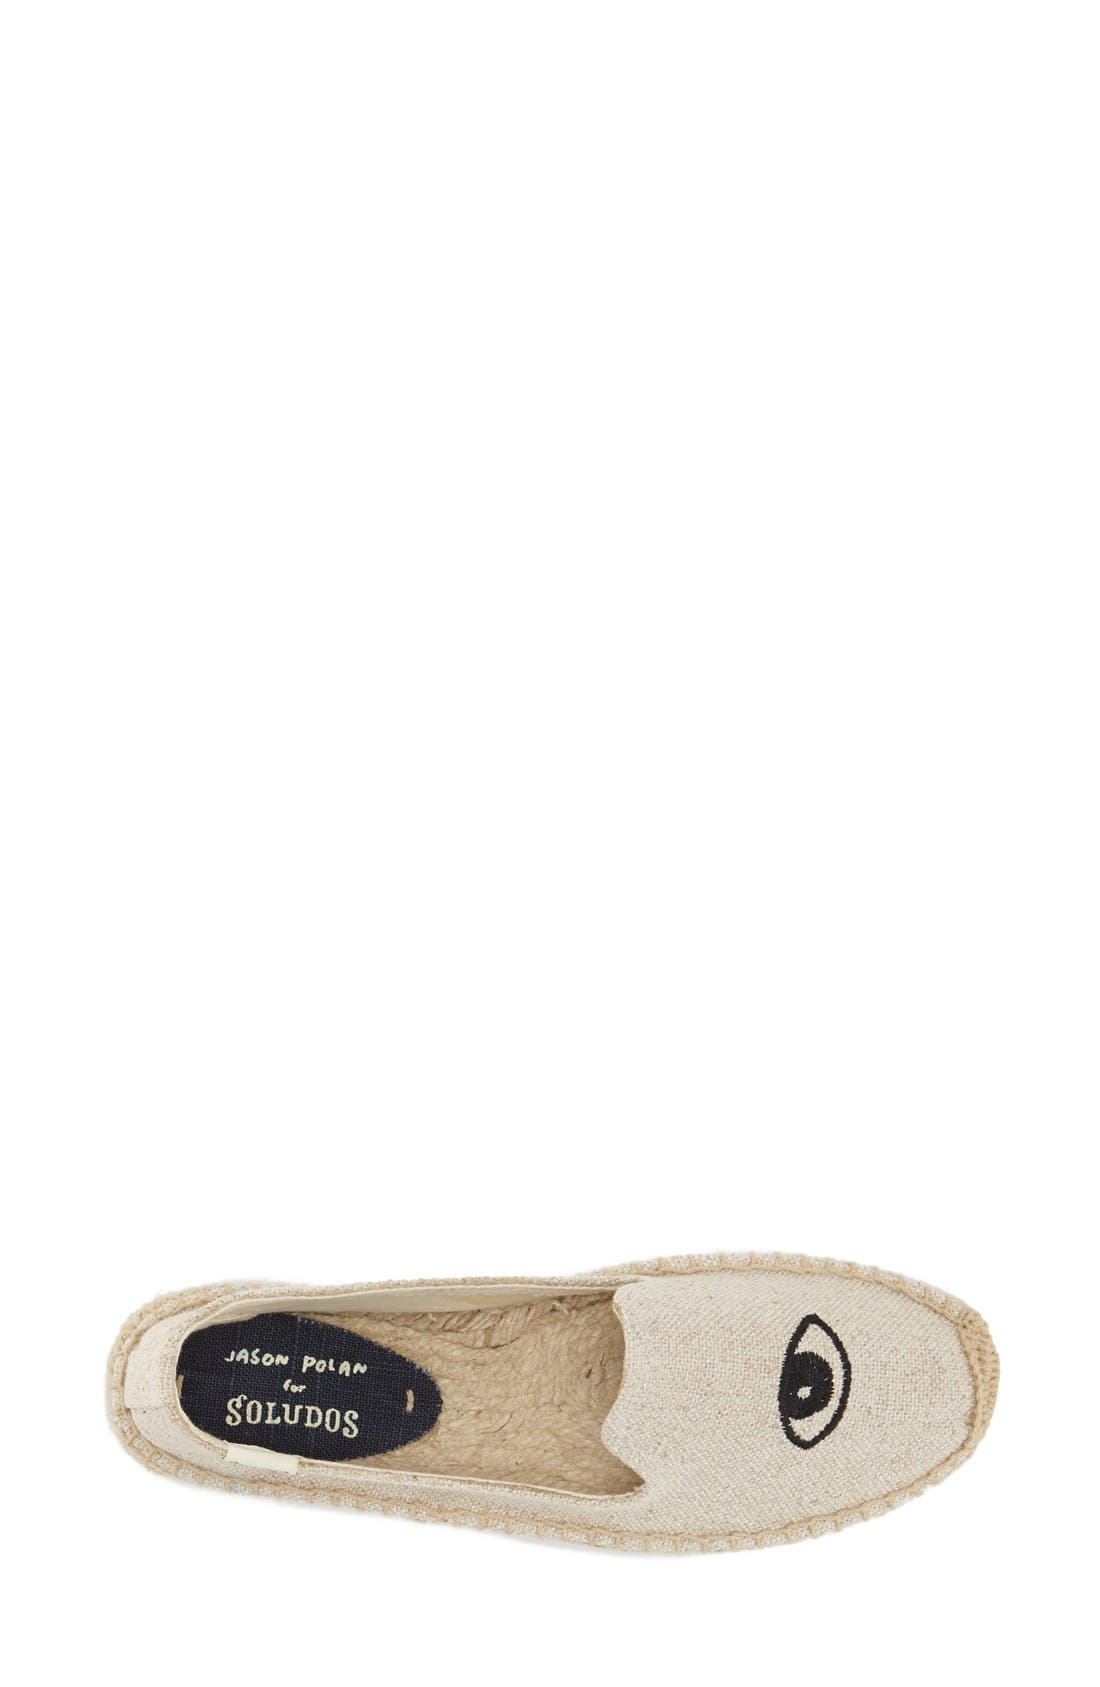 Jason Polan Espadrille Sandal,                             Alternate thumbnail 2, color,                             WINK SAND